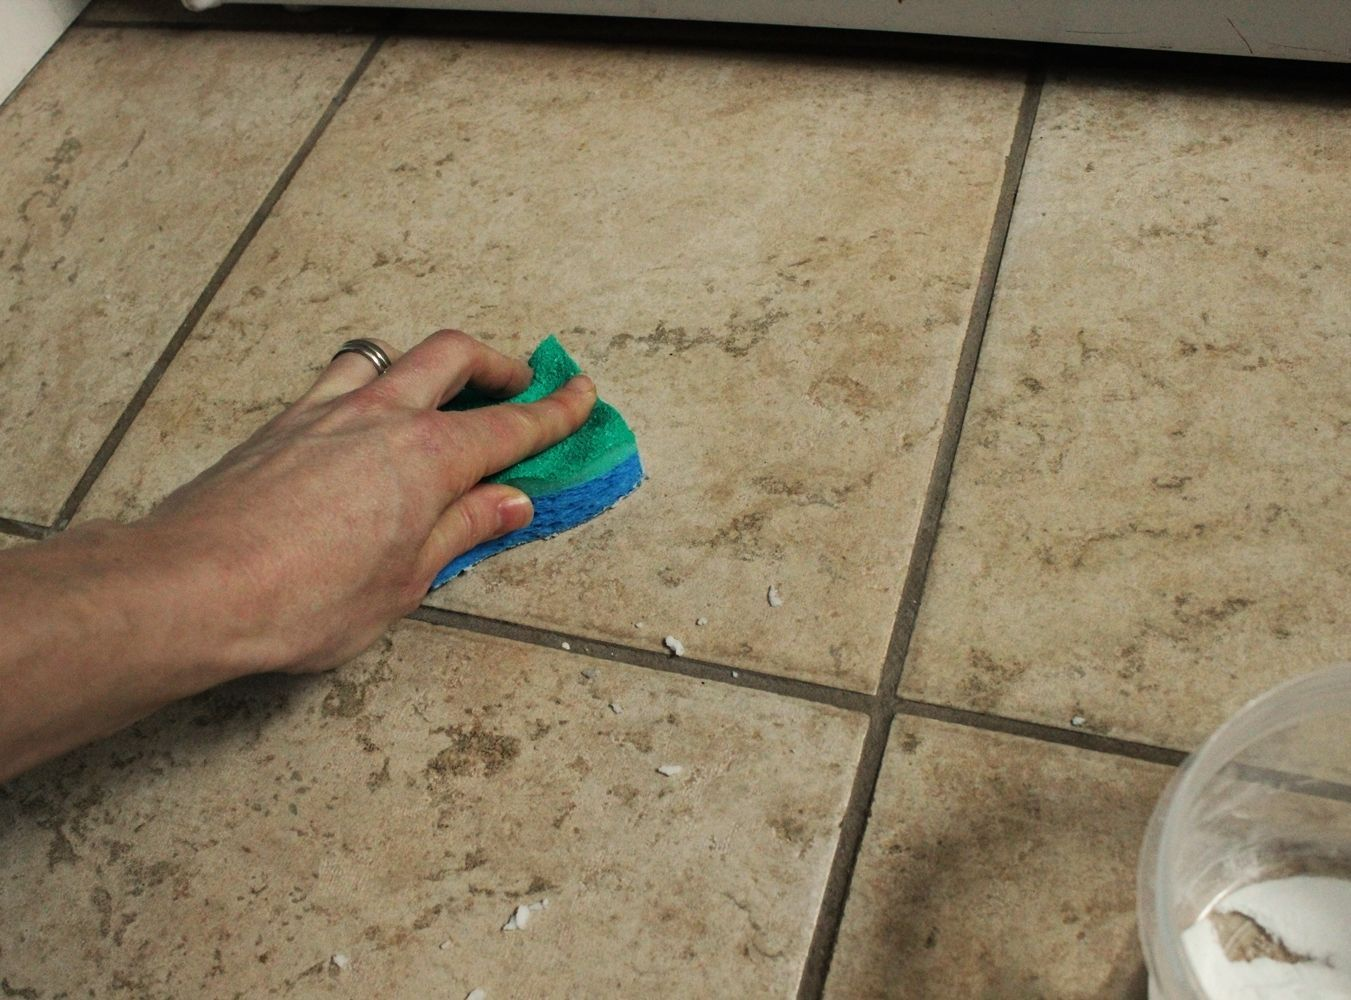 How to clean grout on bathroom floor tiles - Diy Natural Grout Cleaner Clean